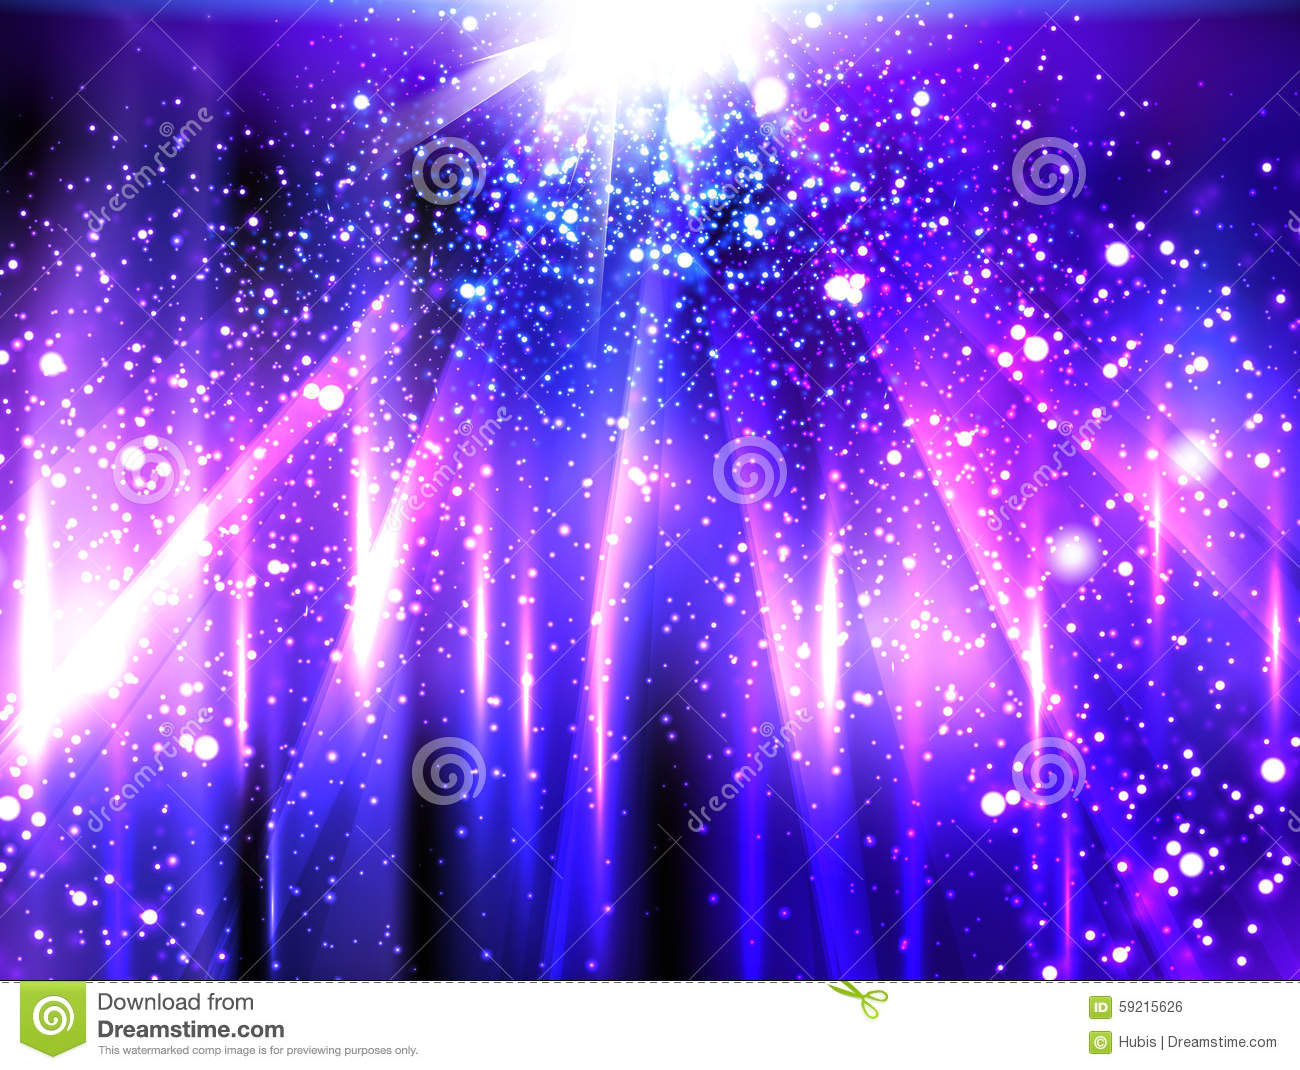 Light Neon Party Background Stock Vector - Image: 59215626